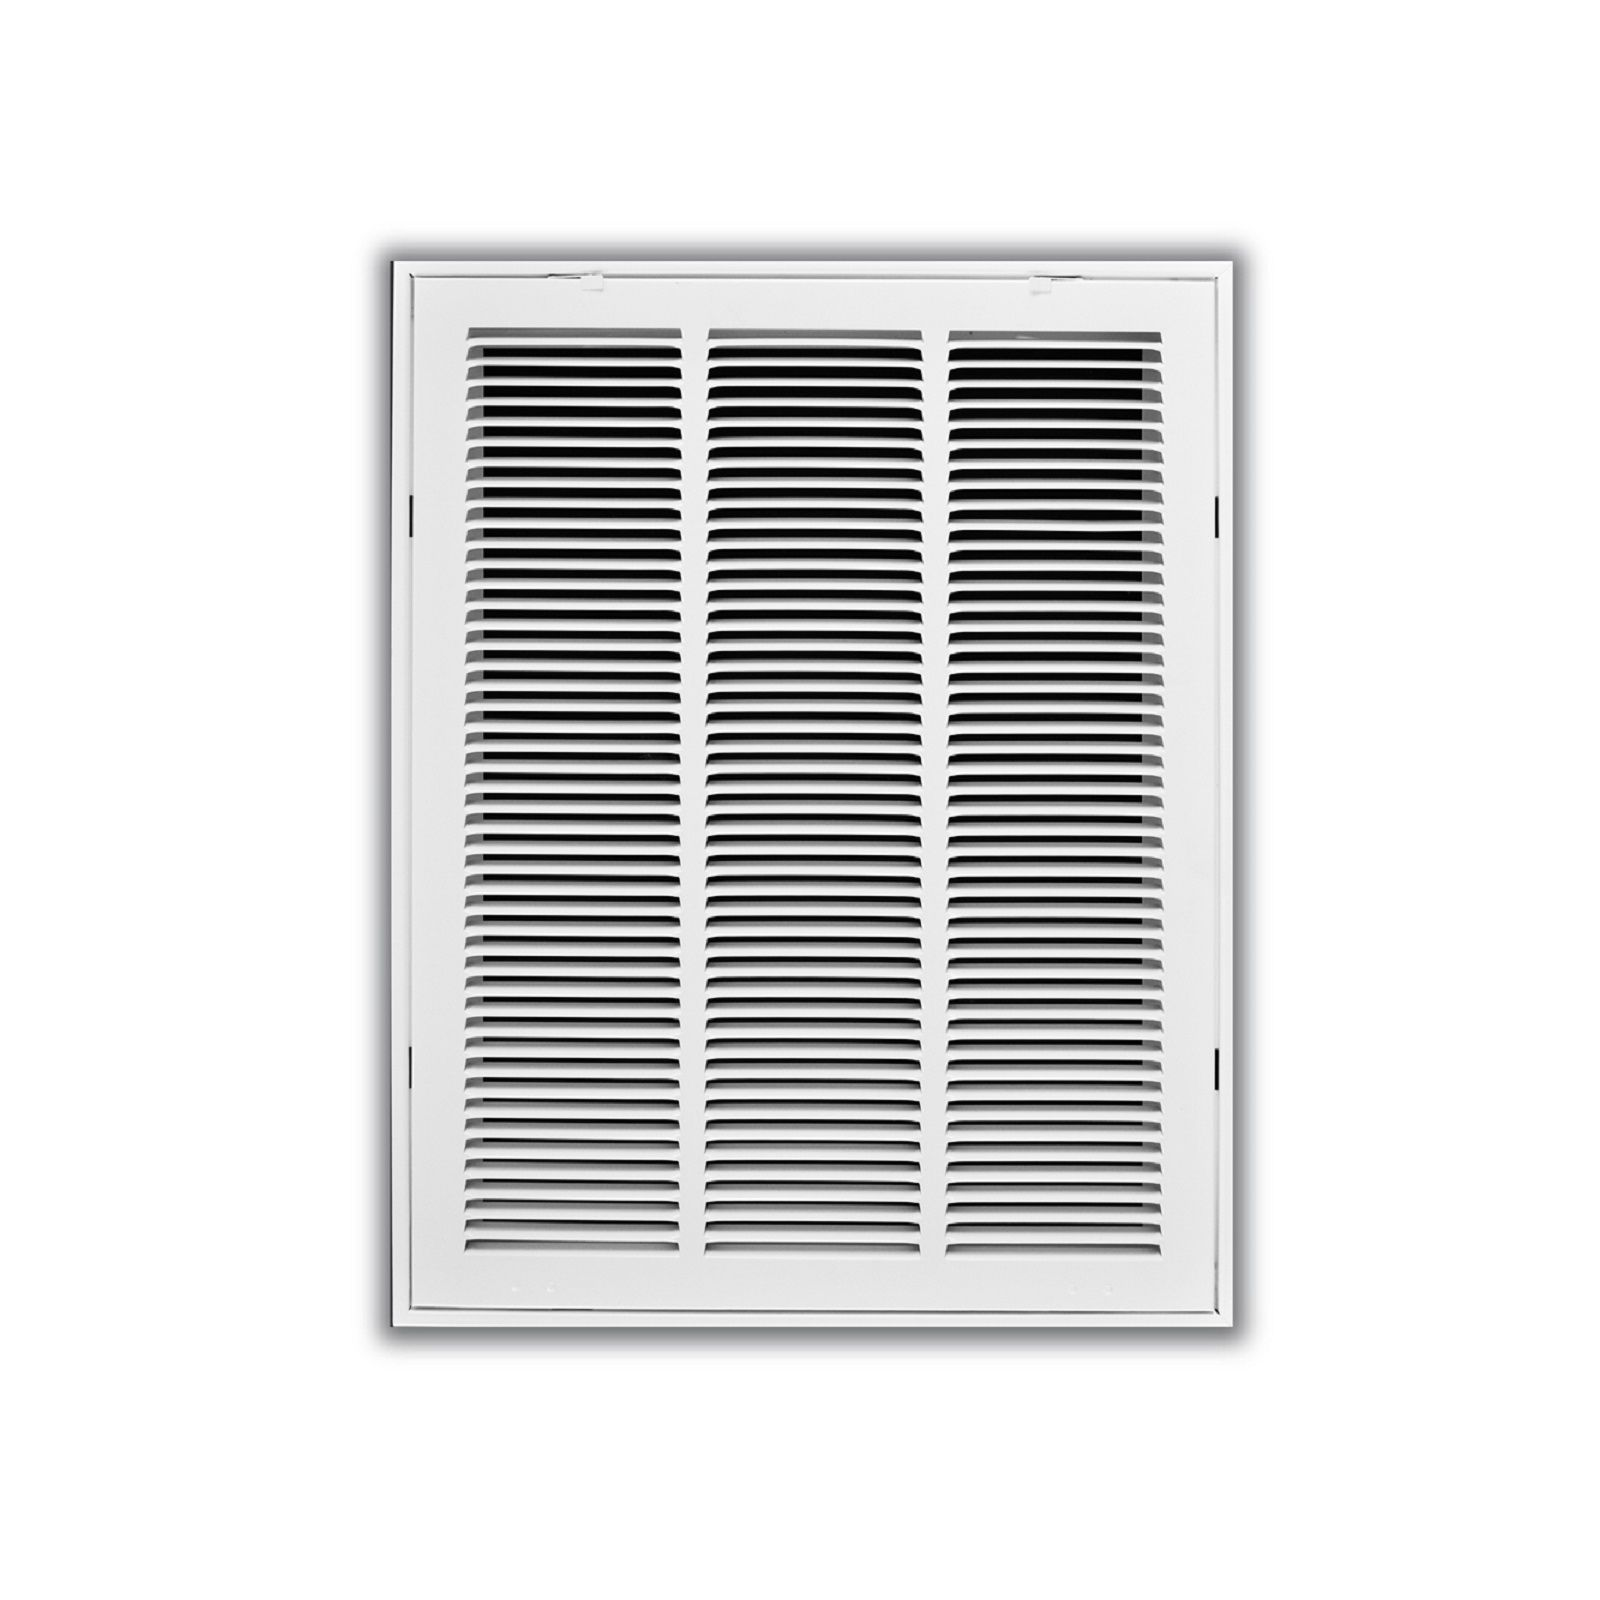 "TRUaire 190 10X10 - Steel Return Air Filter Grille With Fixed Hinged Face, White, 10"" X 10"""